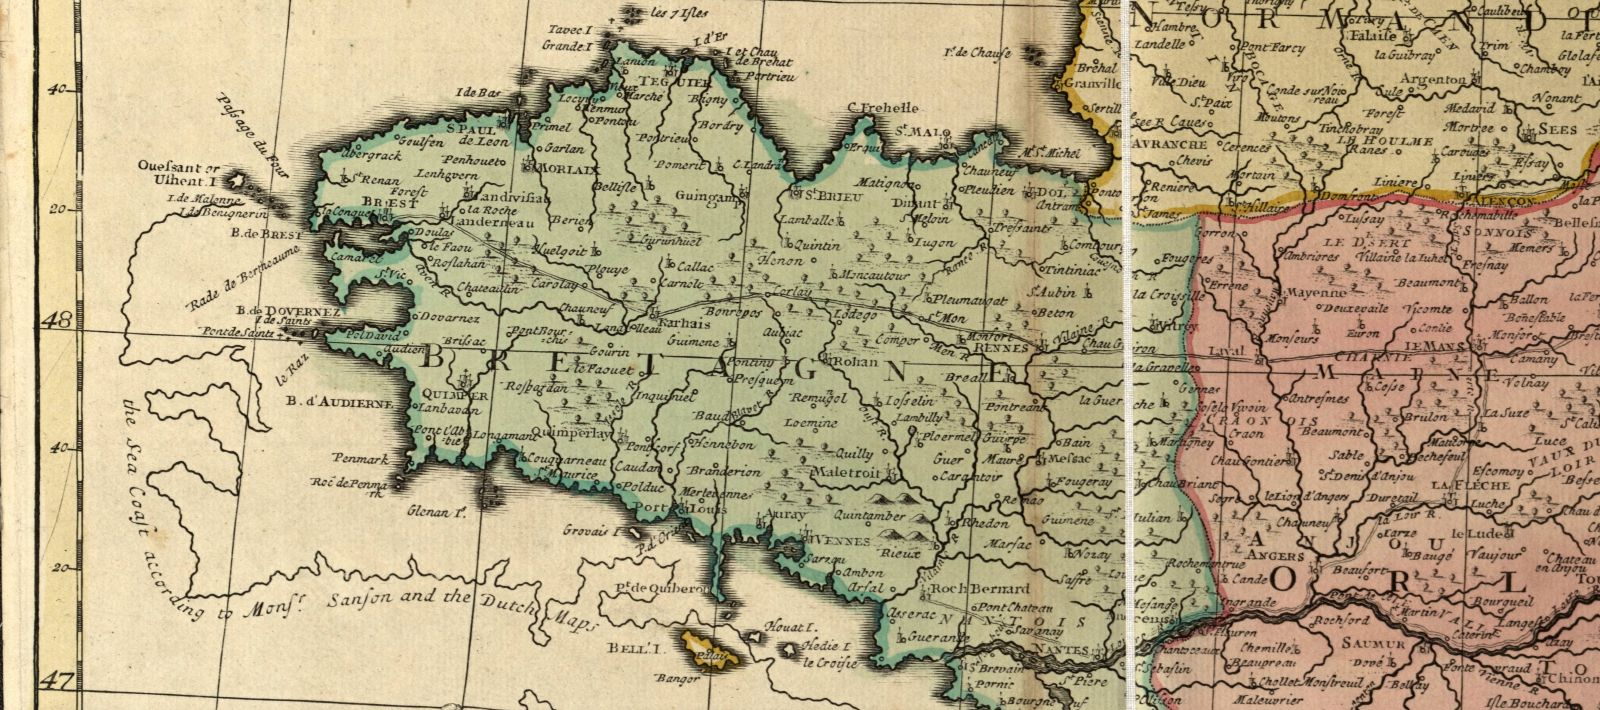 The northwest coast of France as illustrated on the Senex map. The newly drawn coast line is considerably different than the previous map projection. The previous coastline is outlined in black. The updated boundaries of France are colored in blue-green.